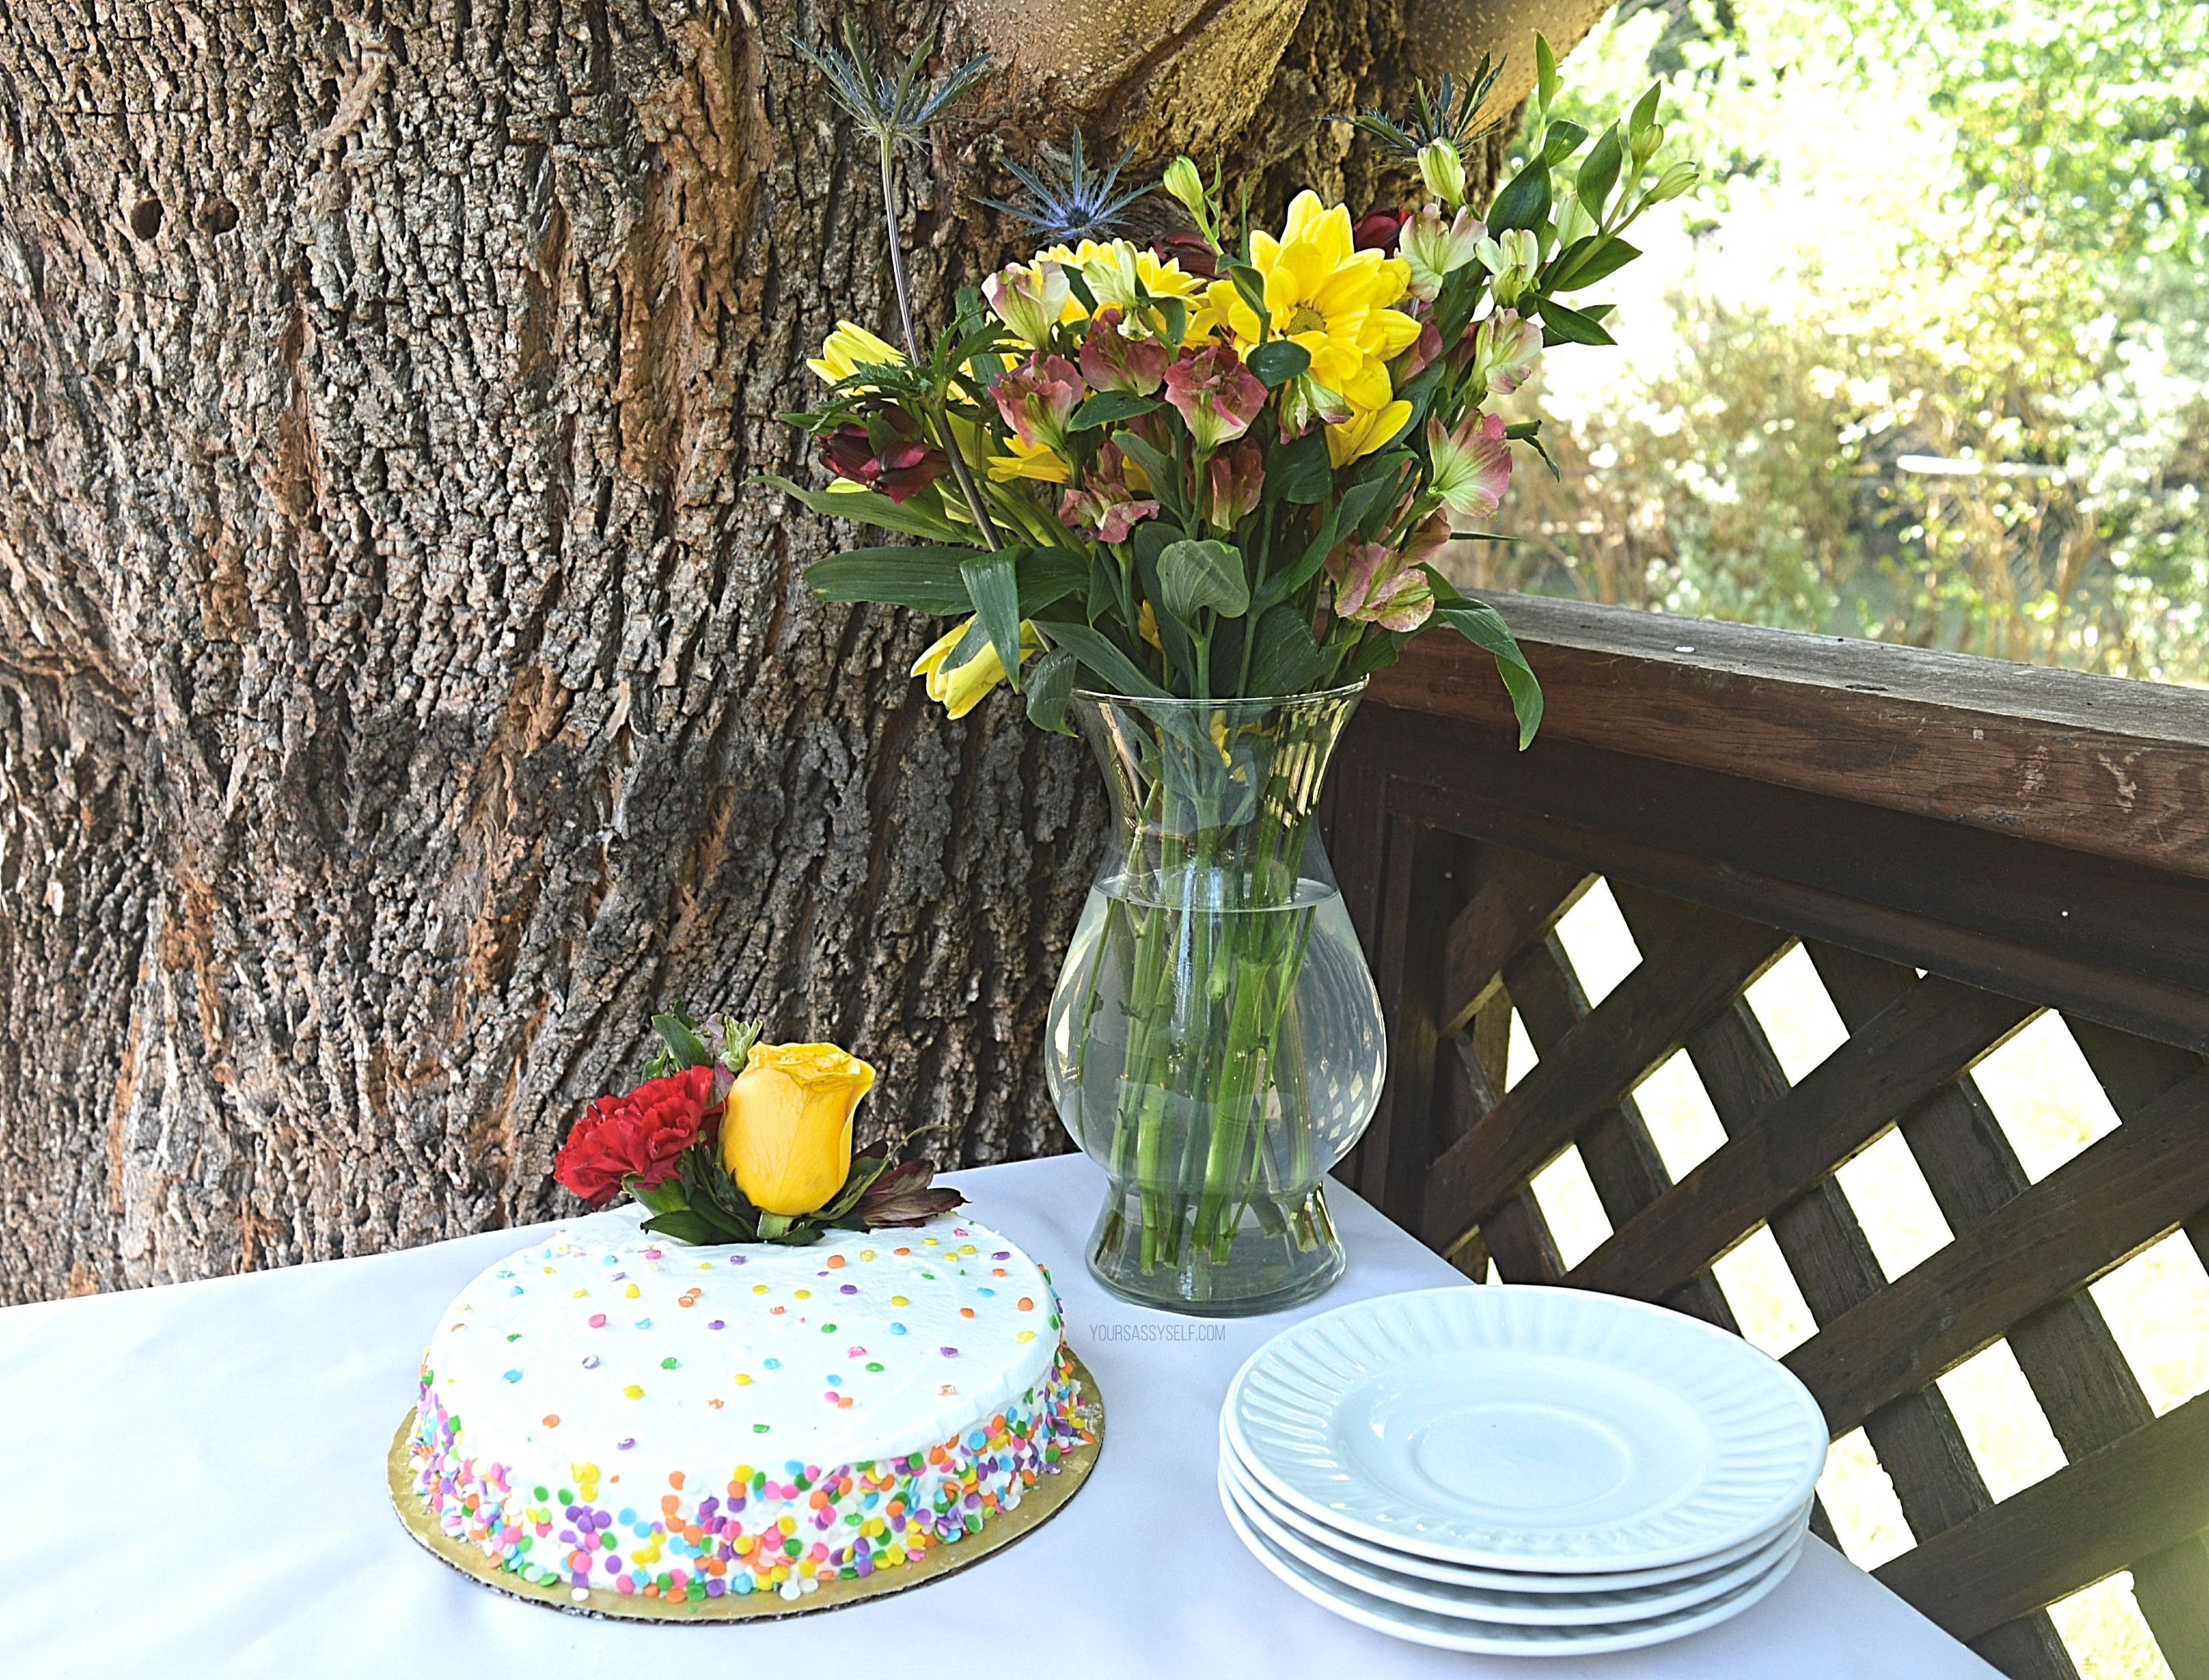 Lone Star Living Bouquet and flower cake at outdoor BBQ - yoursassyself.com